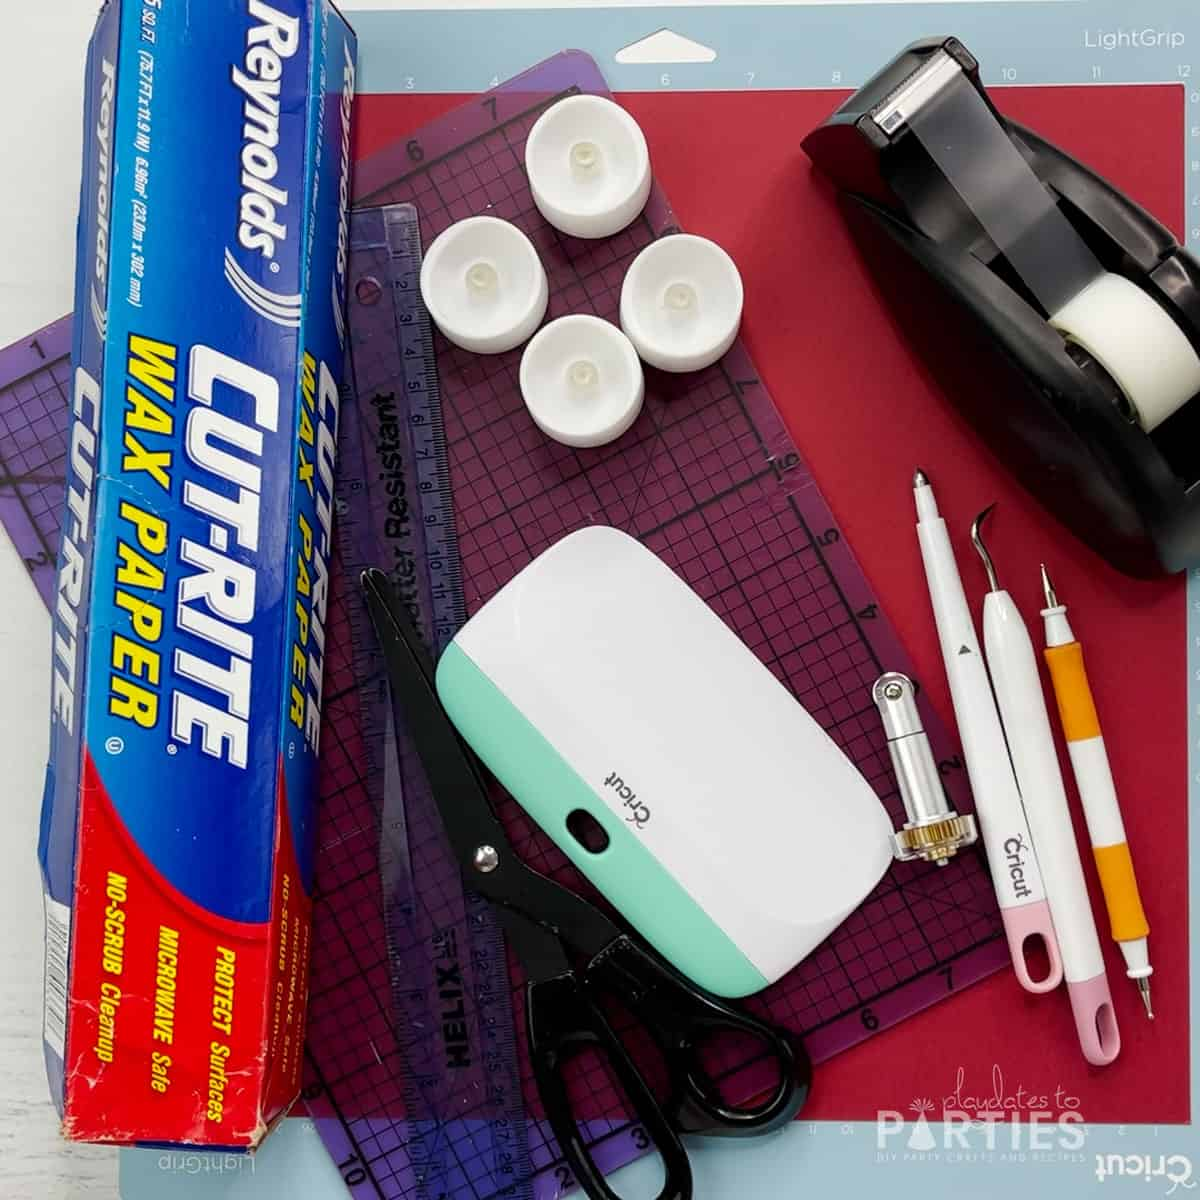 Supplies needed for making a paper luminary with the Cricut